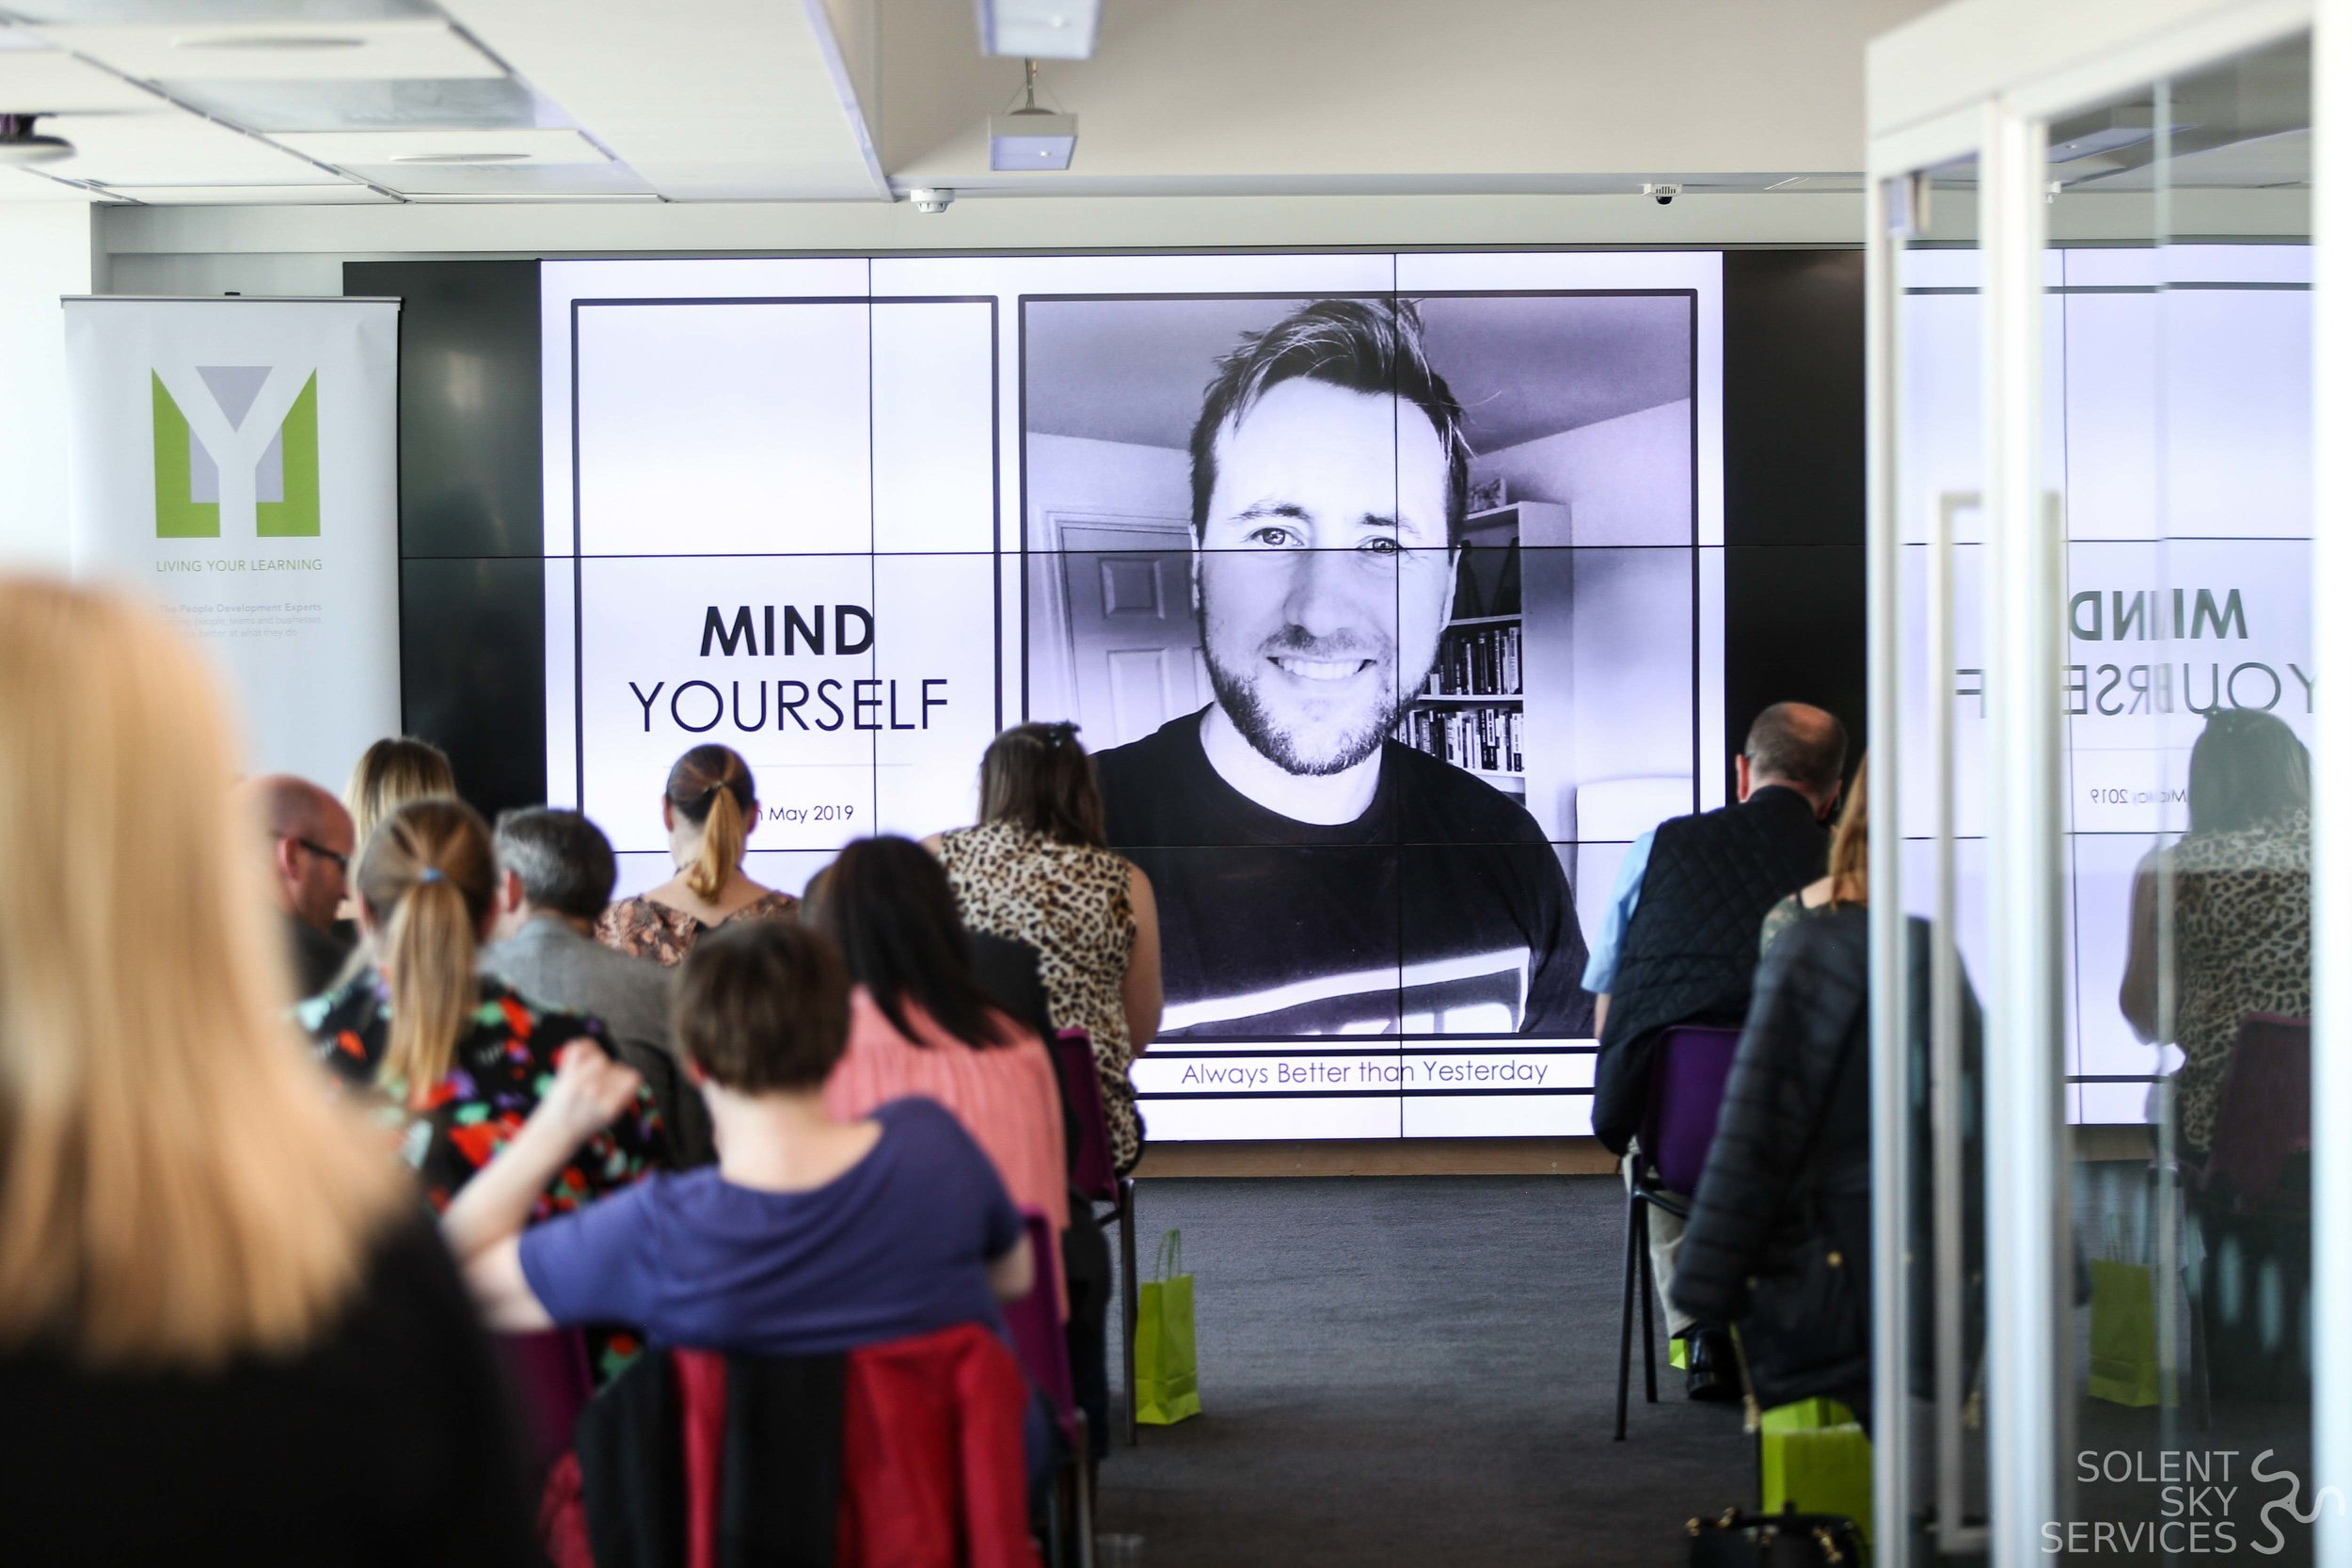 Living Your Learning 'Mind' yourself event